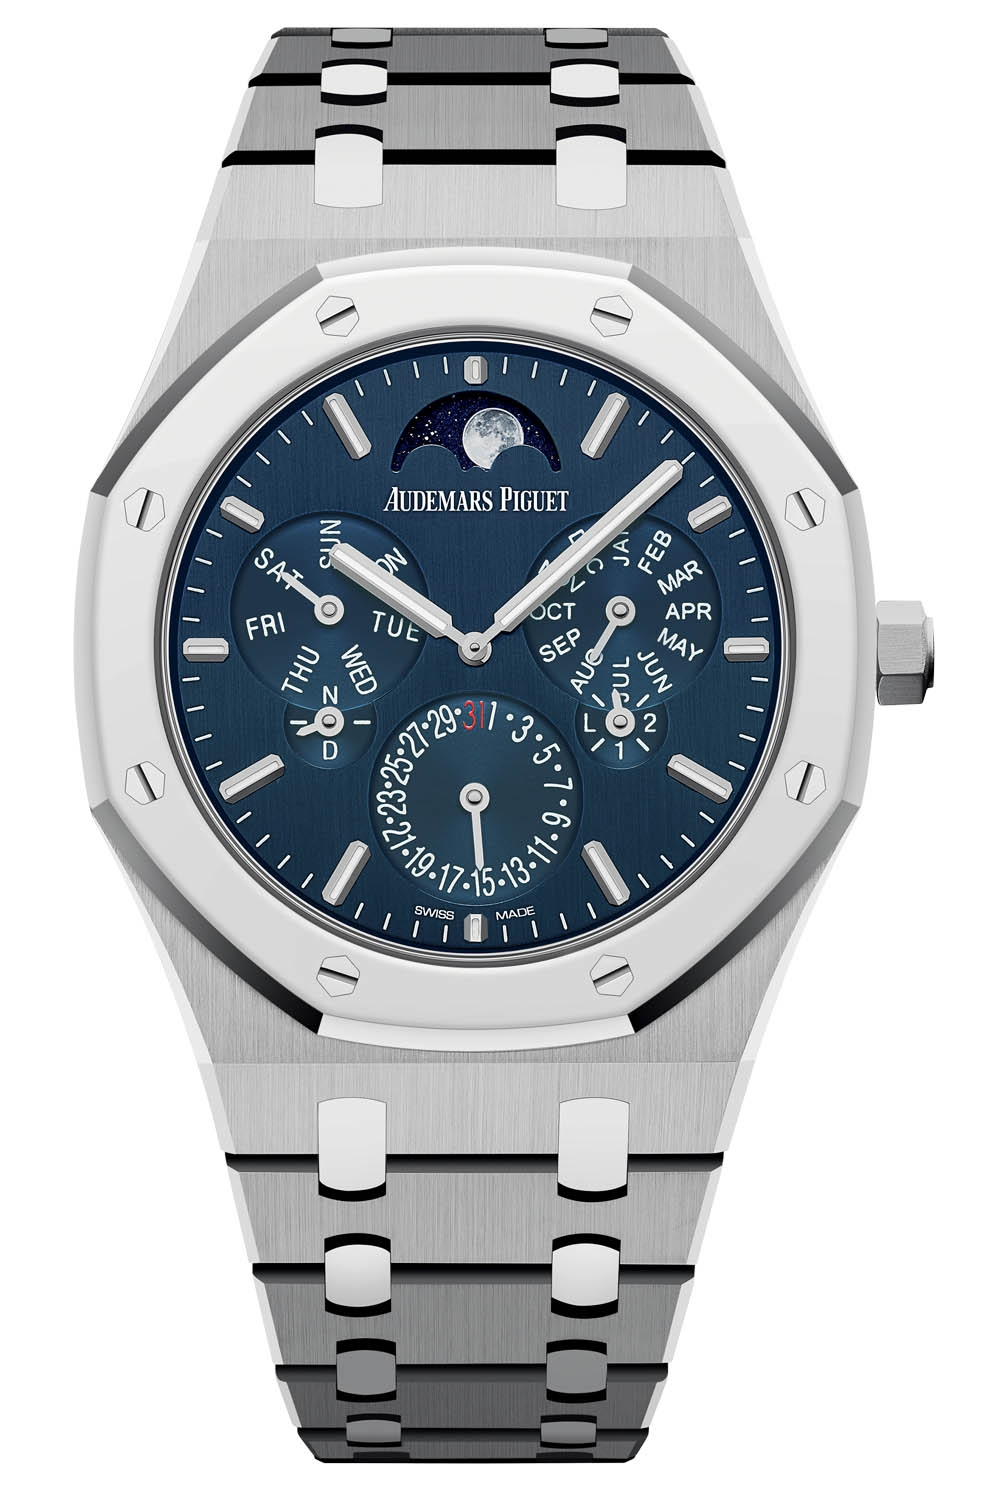 Audemars-Piguet-Royal-Oak-Selfwinding-Perpetual-Calendar-Ultra-Thin-RD2-based-26586IP.jpg